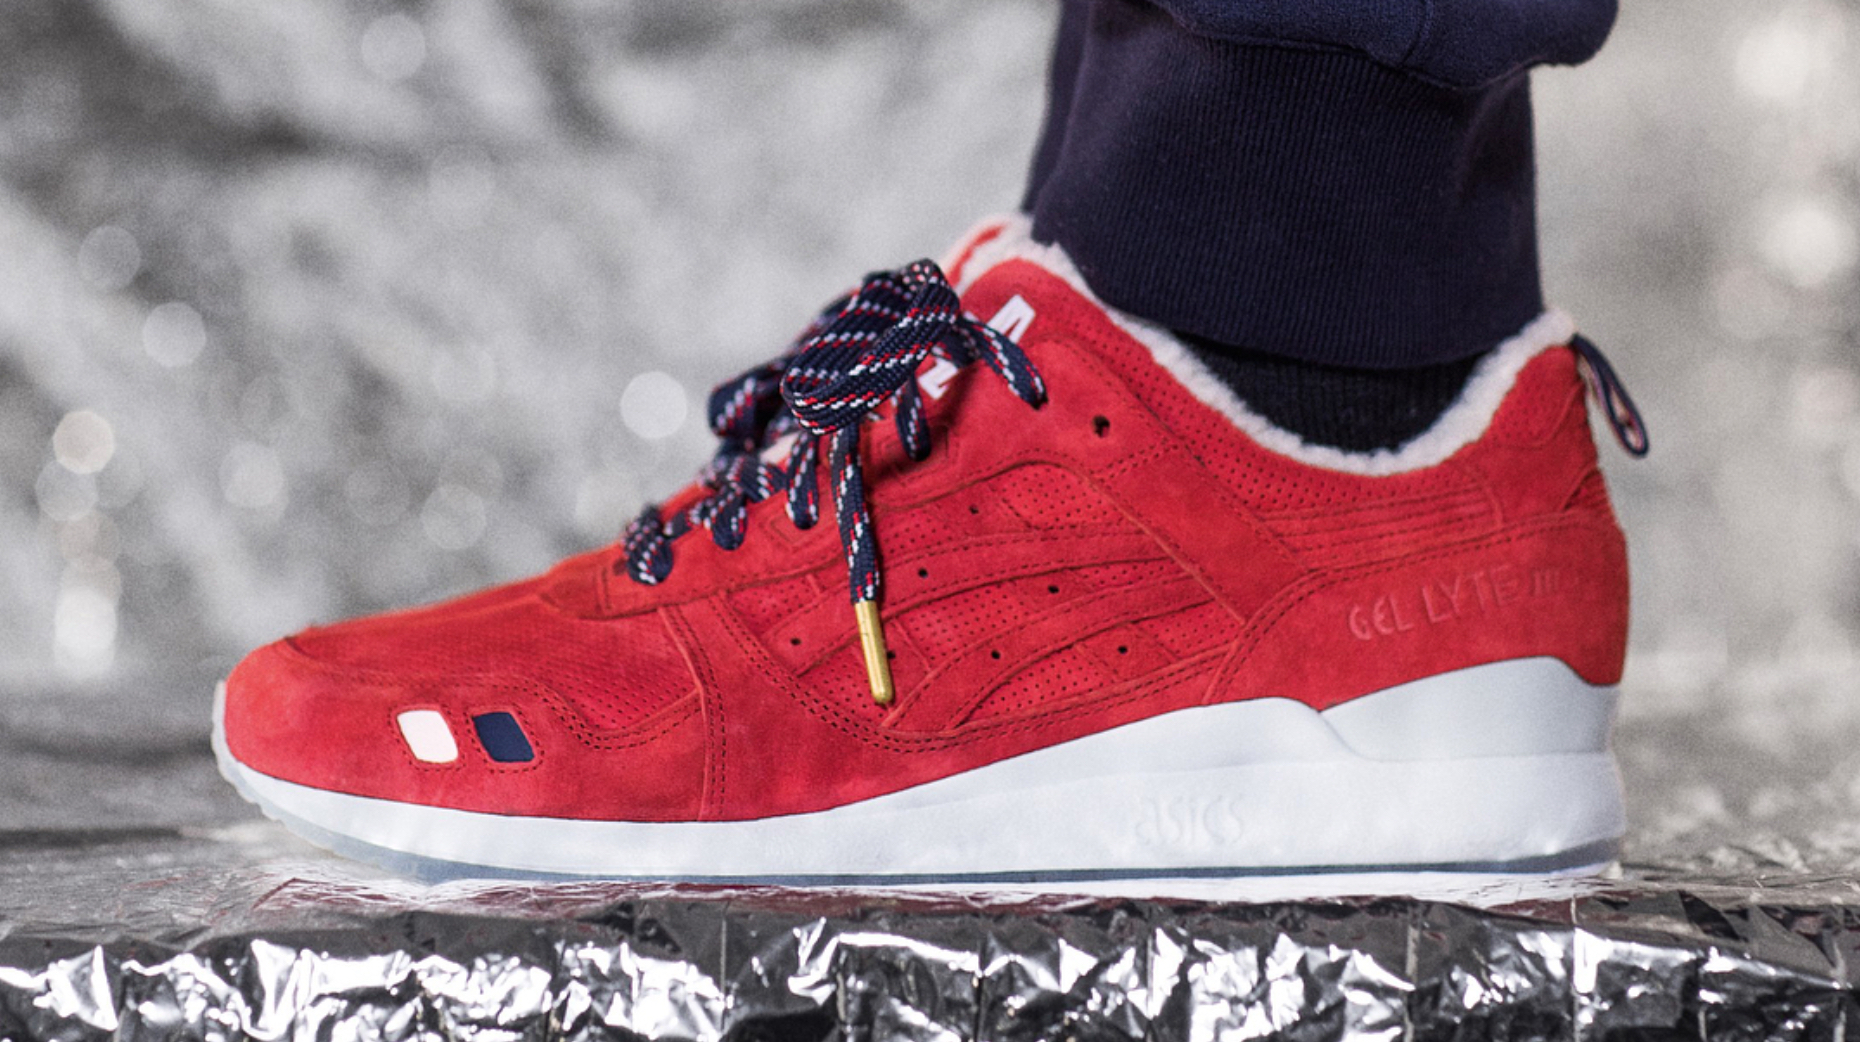 50% zniżki szeroki zasięg cienie Moncler, Asics, and Kith Link for Winter Footwear and ...